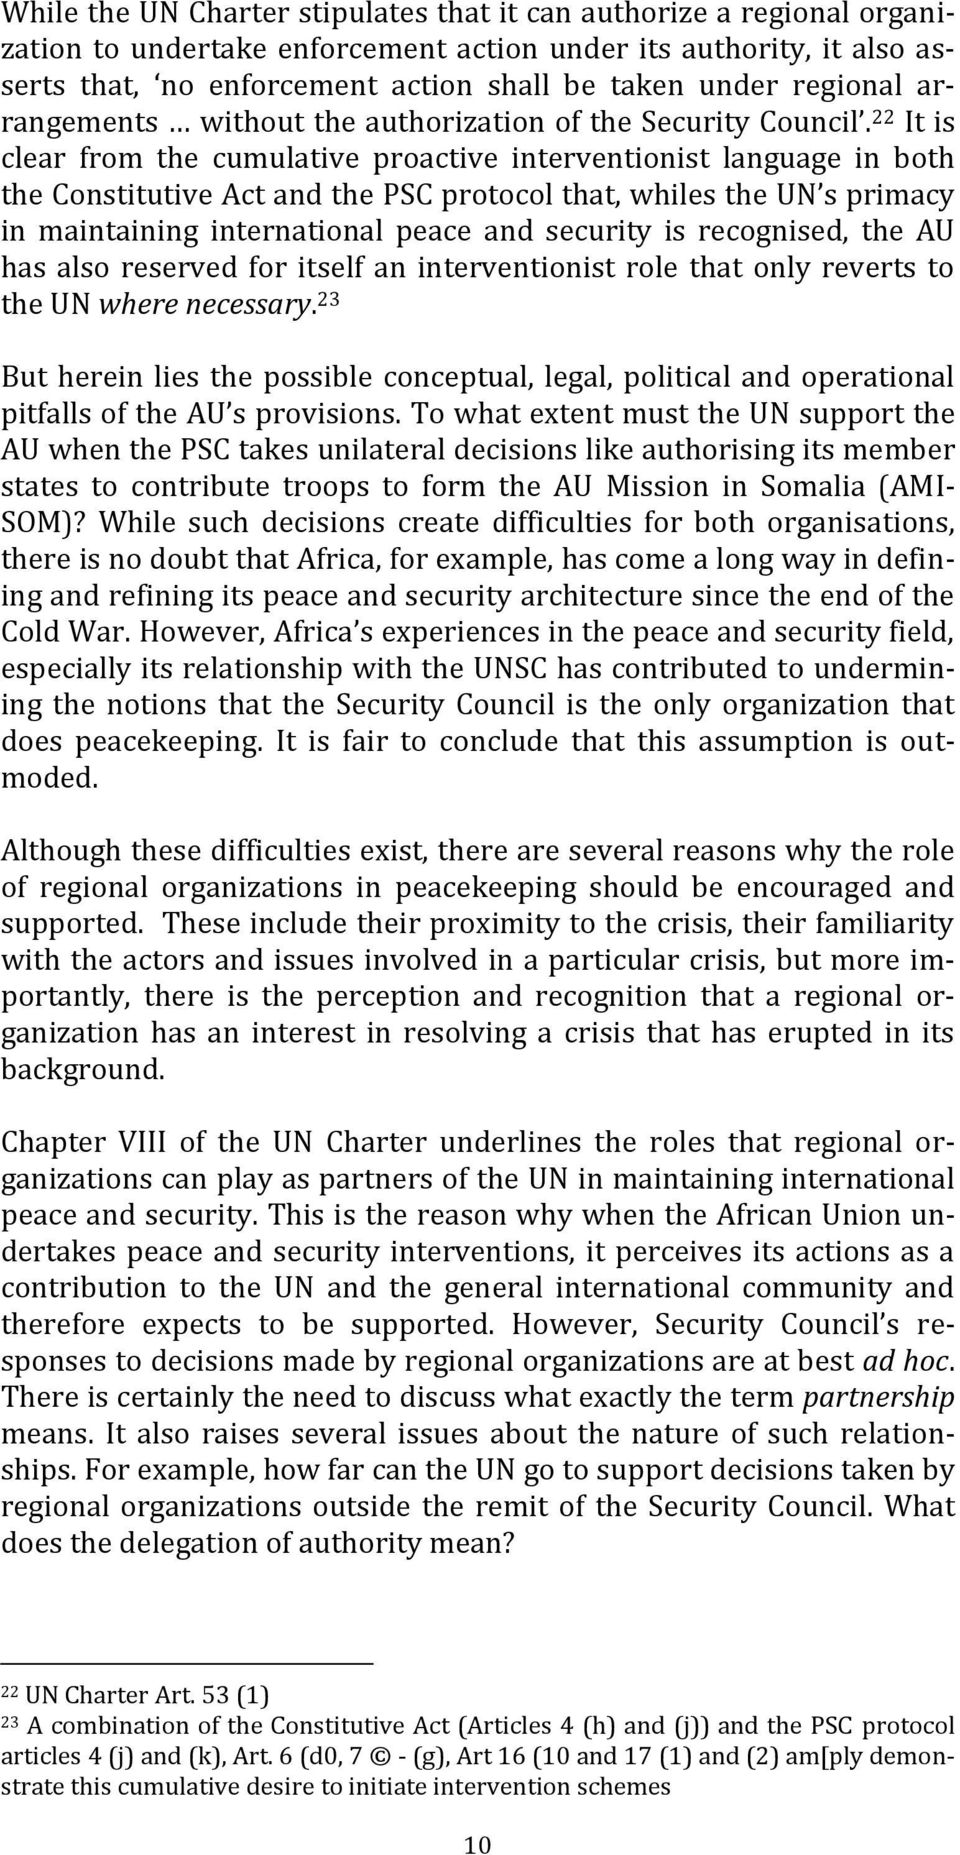 22 It is clear from the cumulative proactive interventionist language in both the Constitutive Act and the PSC protocol that, whiles the UN s primacy in maintaining international peace and security